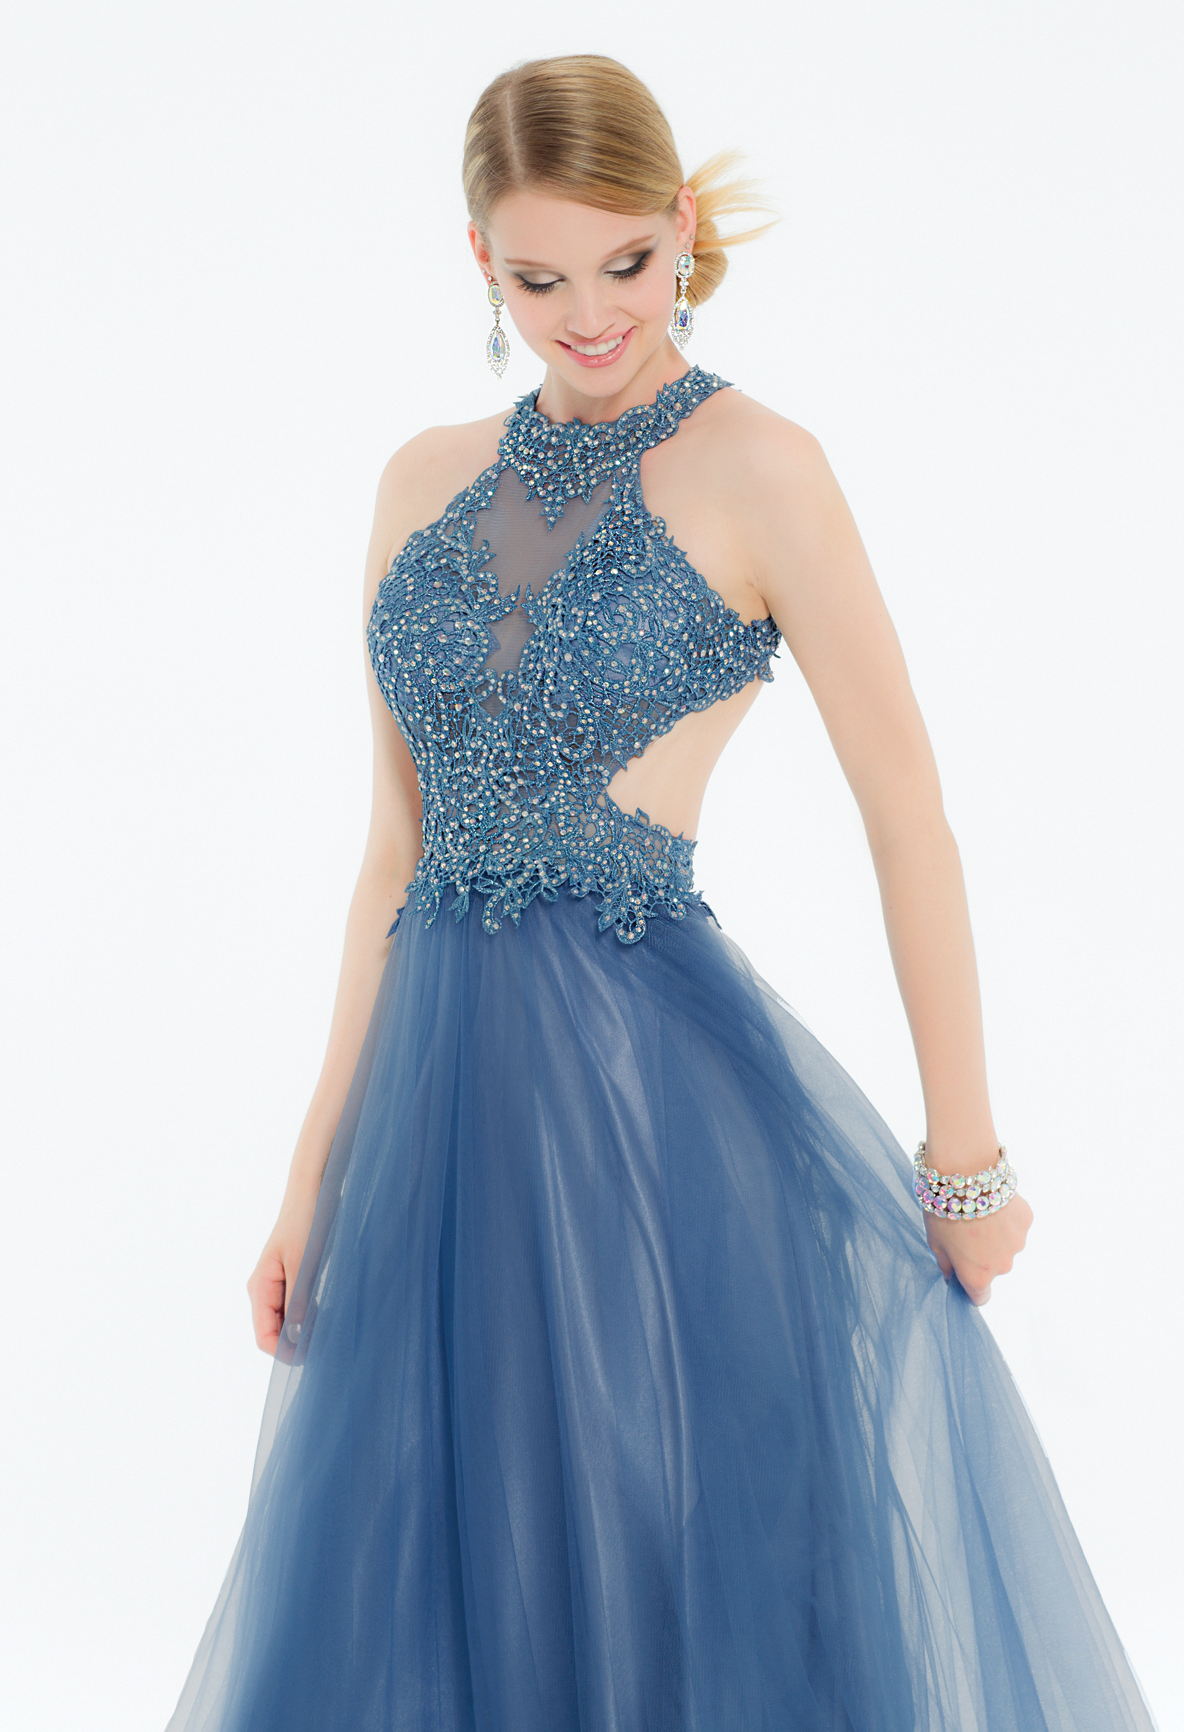 ba453d45bd556 Look like a modern Cinderella in this fancy evening dress! The illusion  halter neckline